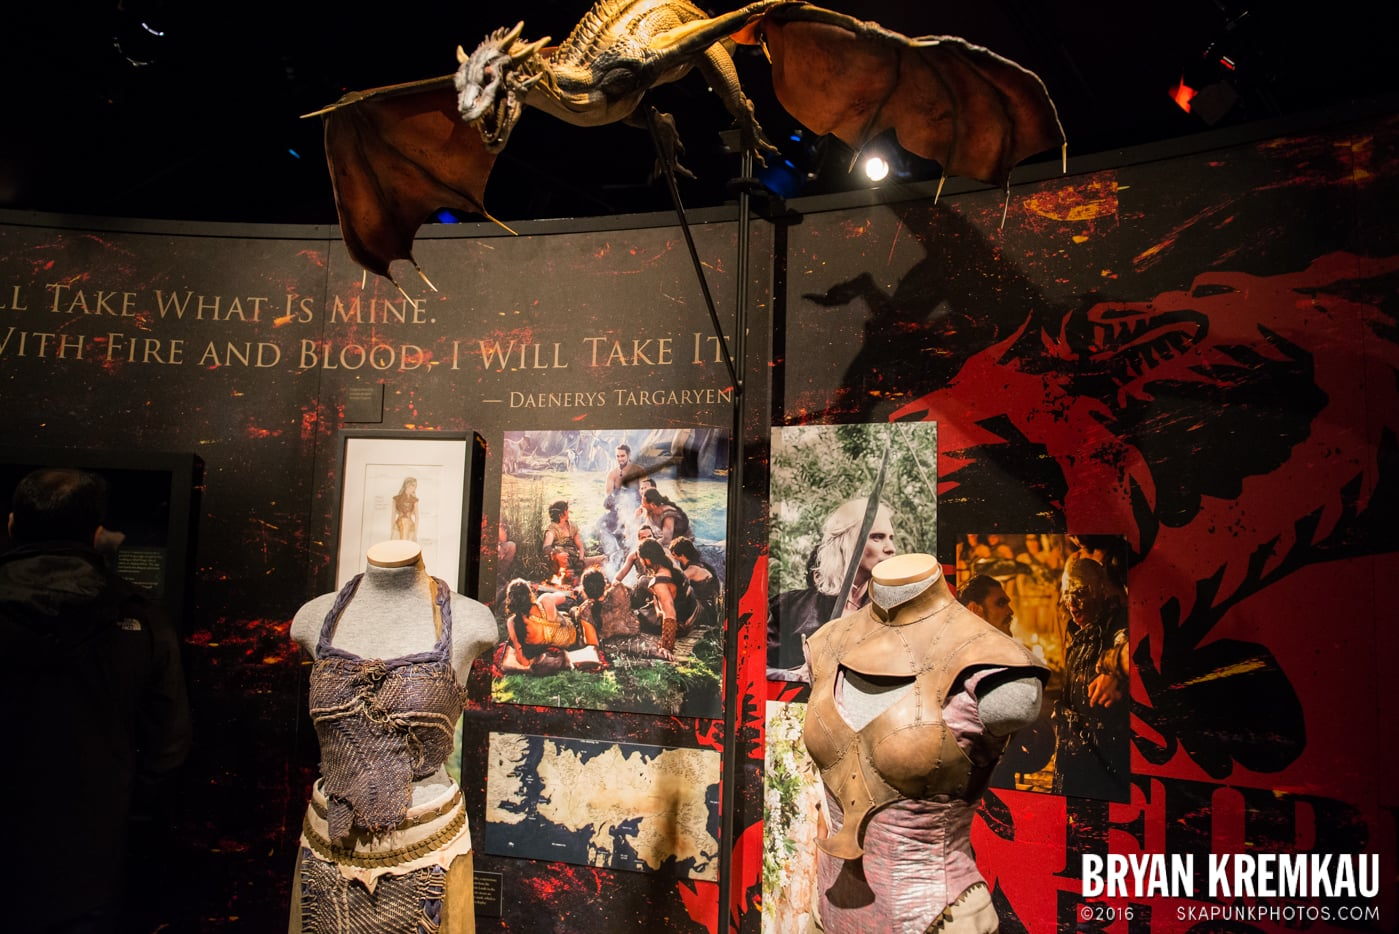 Game Of Thrones Exhibition @ New York, NY - 3.29.13 (41)